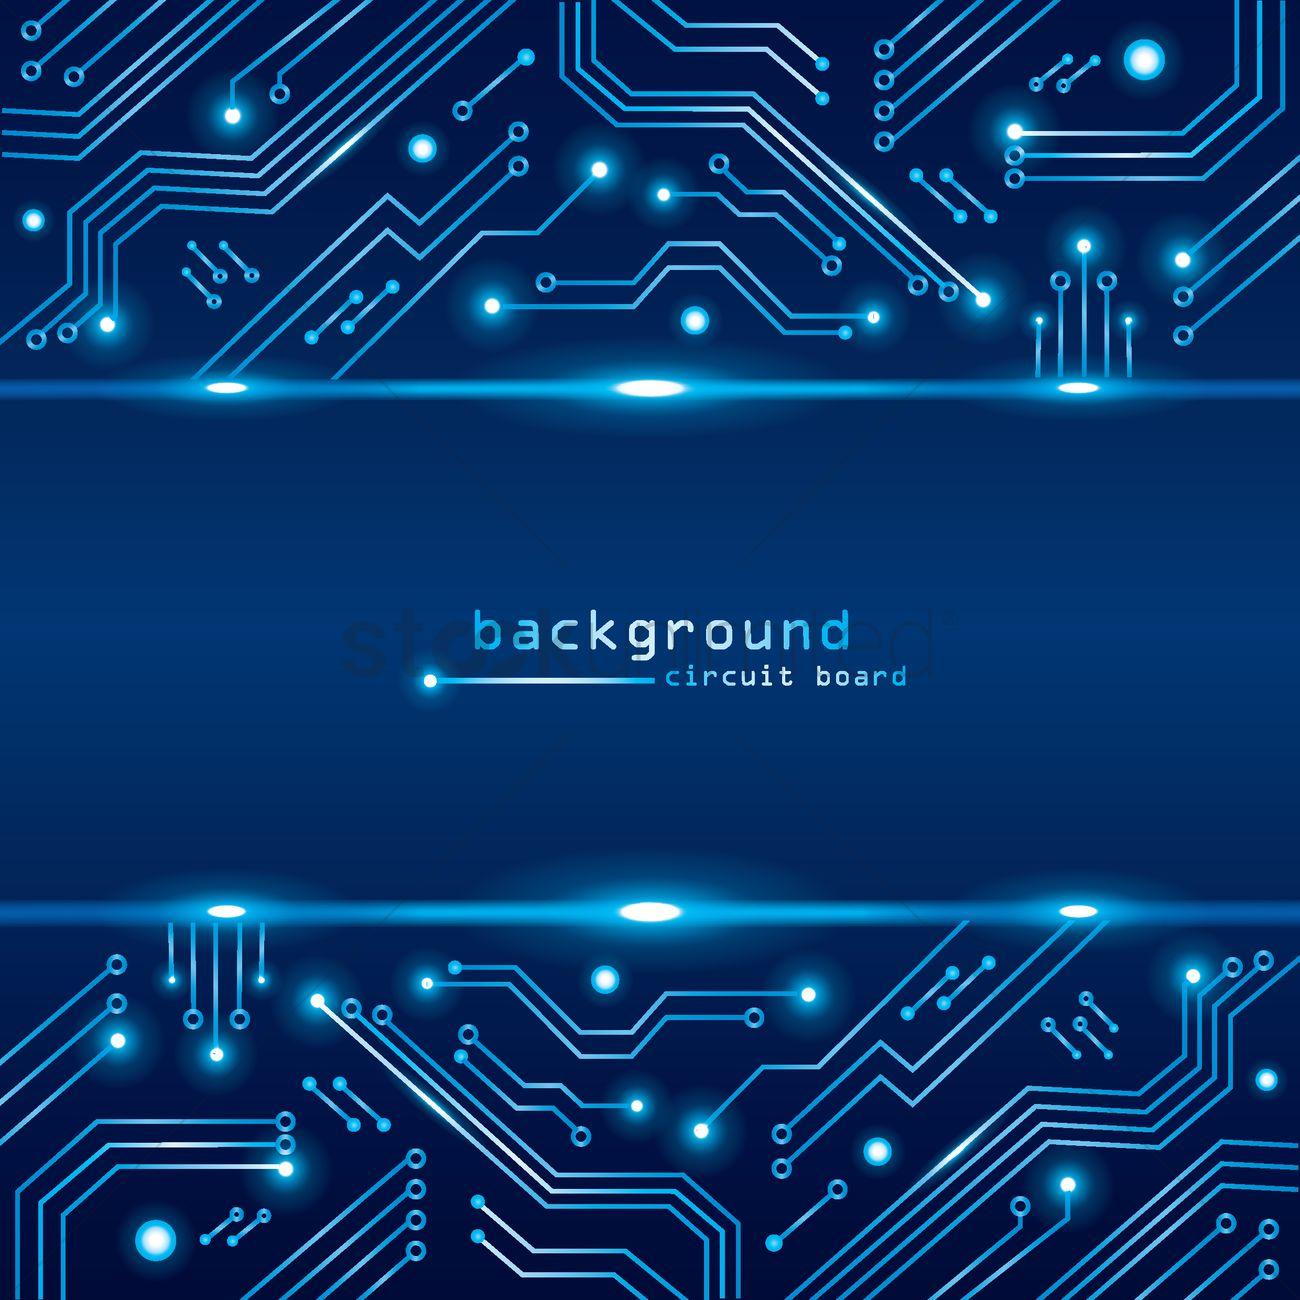 Magnificent Technical Circuit Board Background Vector Image 1789155 Wiring Cloud Filiciilluminateatxorg